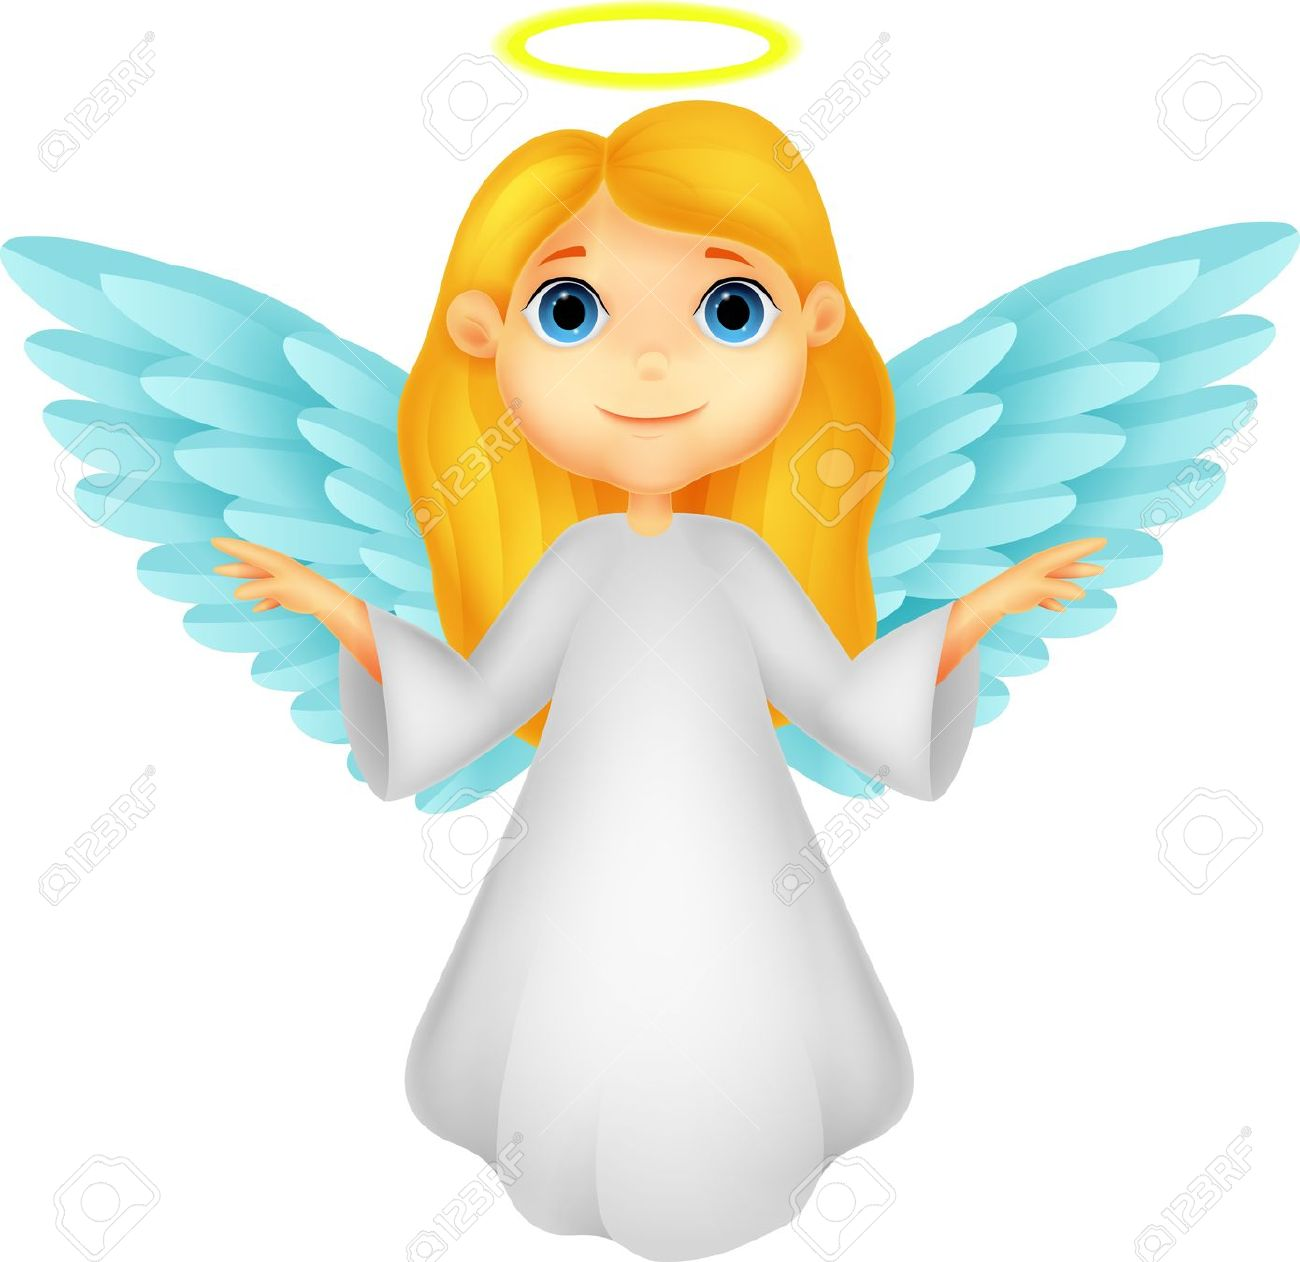 Angel jpg clipart graphic royalty free library 5+ Christmas Angel Clipart | ClipartLook graphic royalty free library